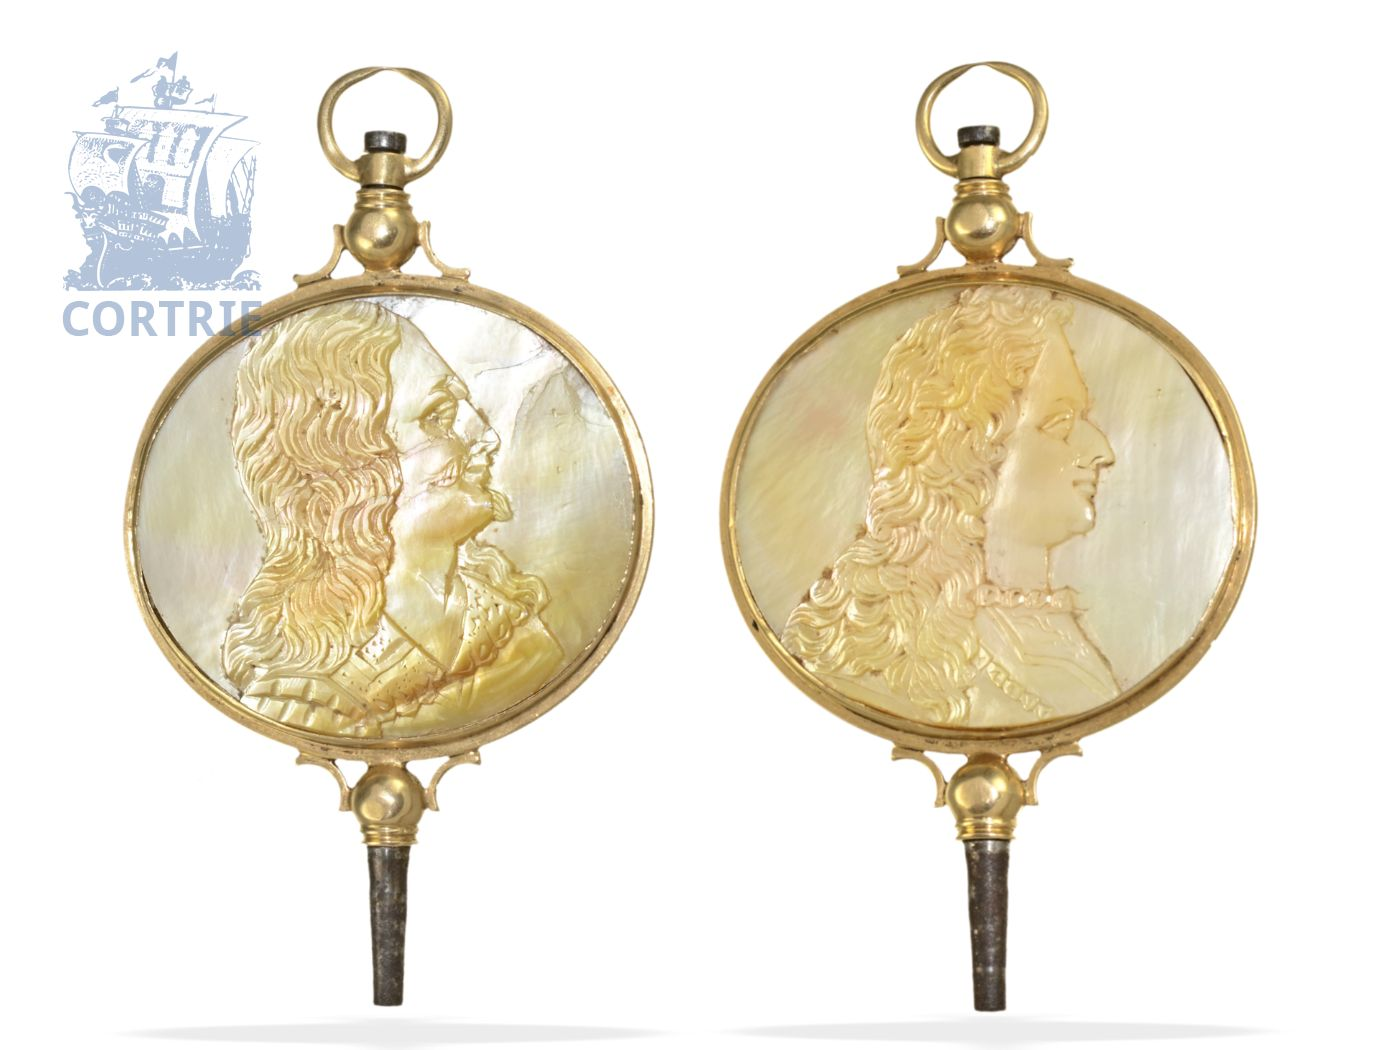 Watch key: very rare verge watch key with mother-of-pearl cameo on both sides, France ca. 1820-